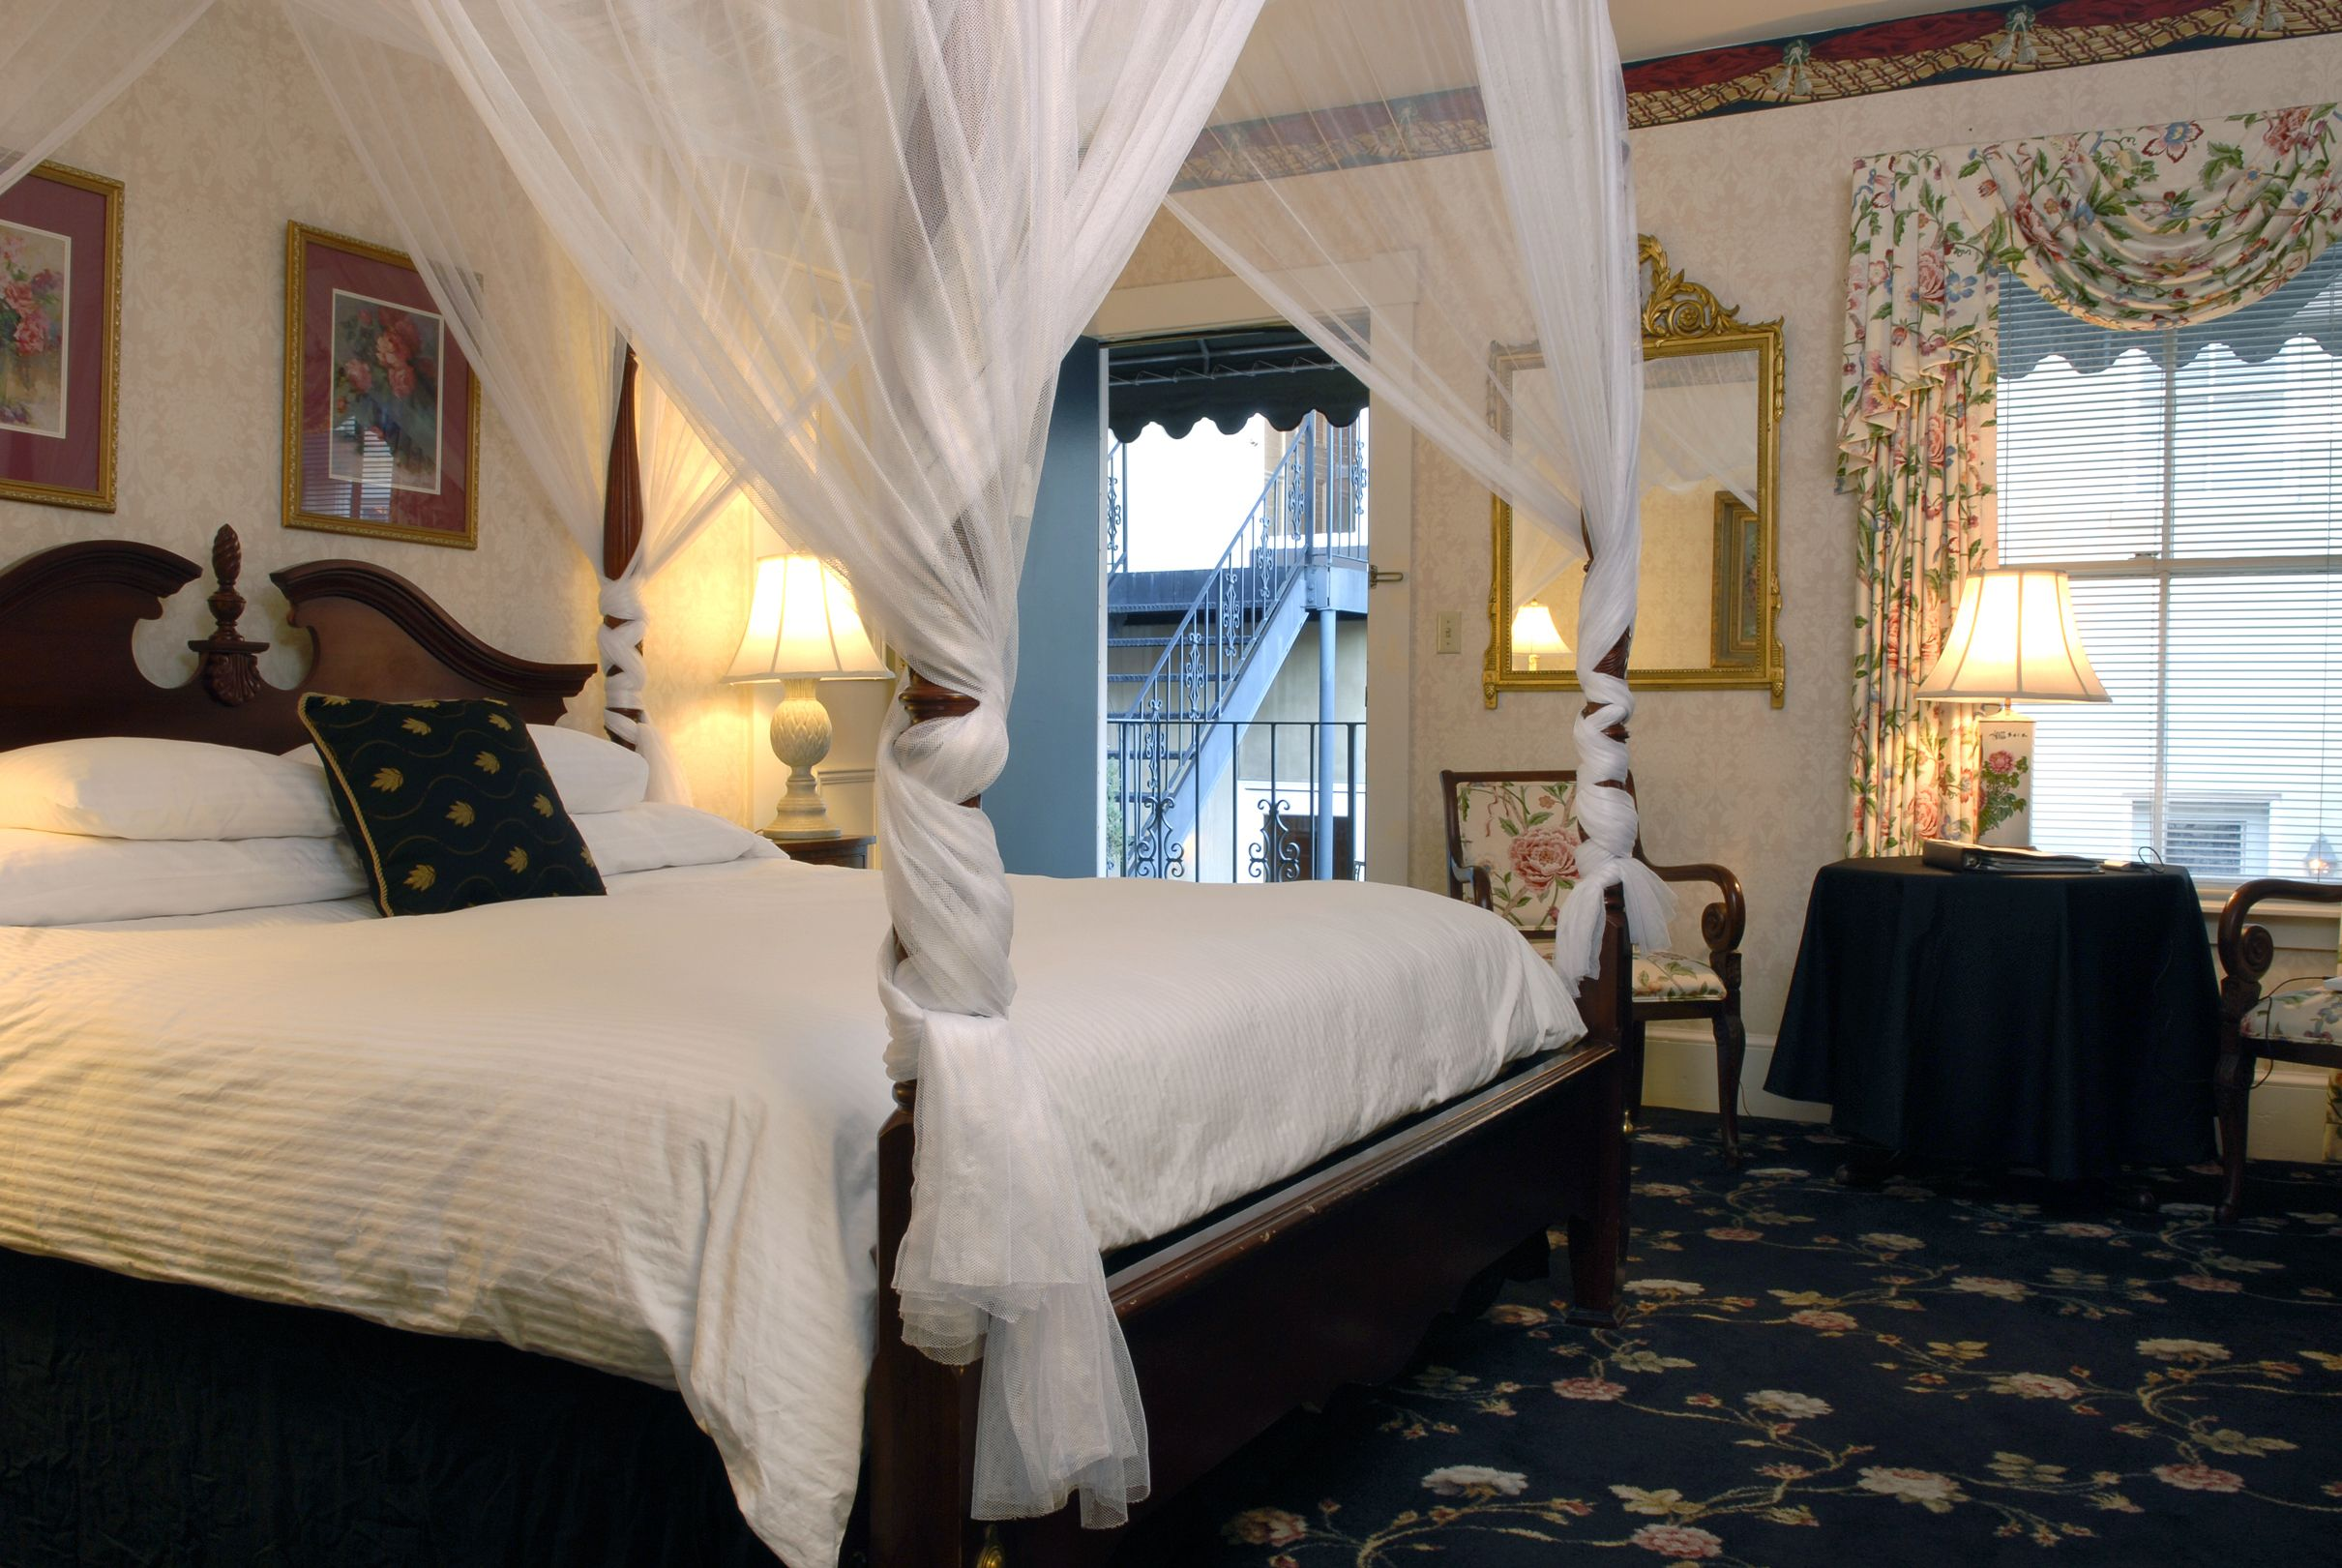 307 BENNINGTON A king size four poster rice bed with